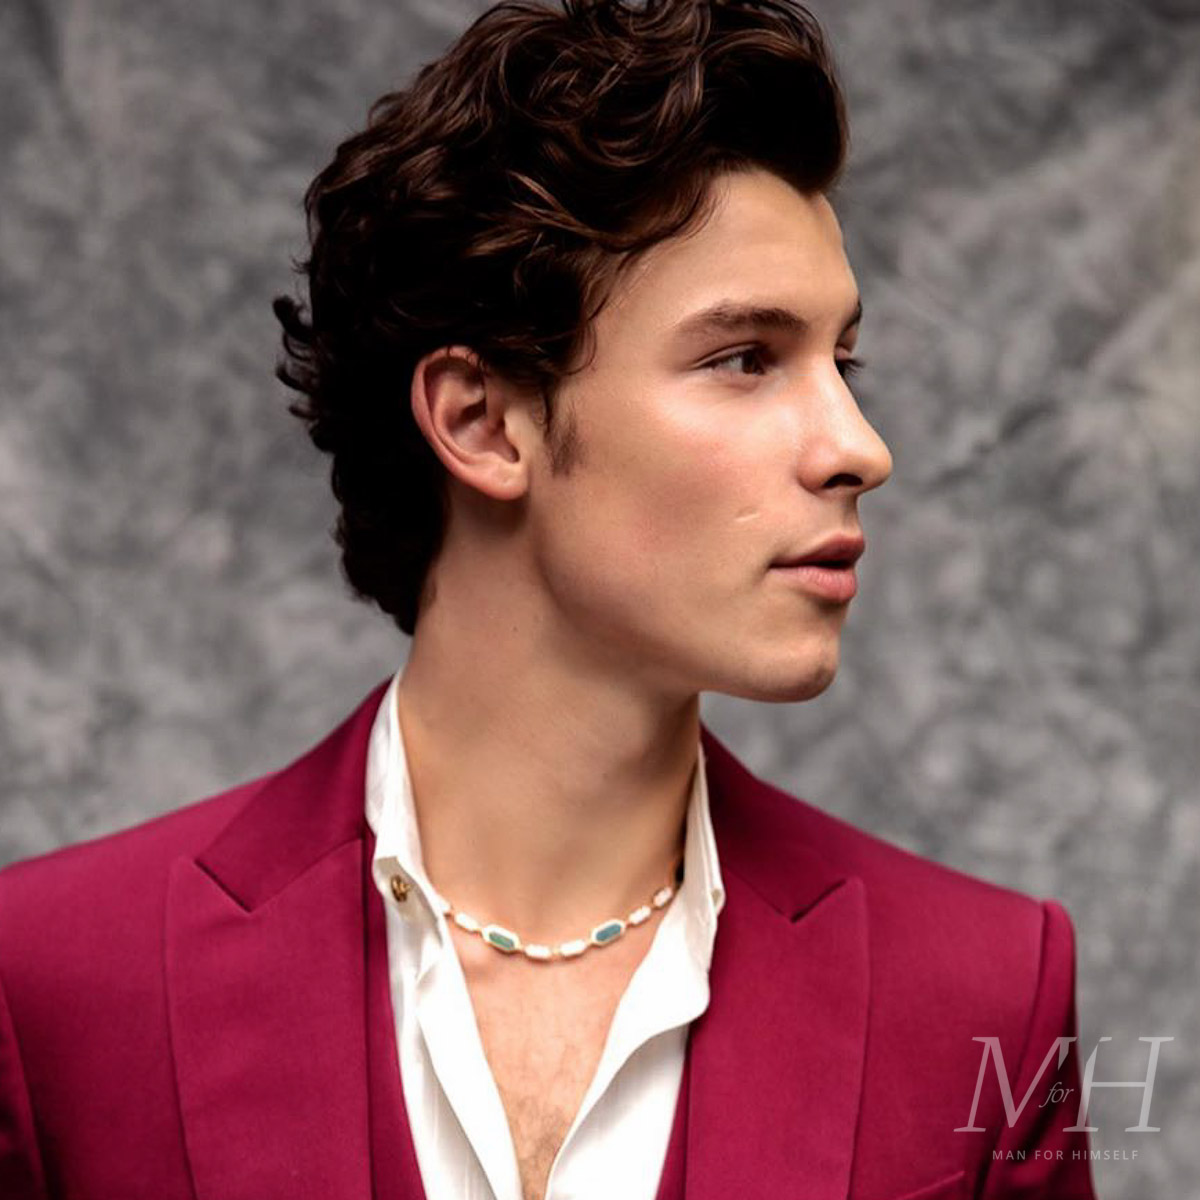 Shawn Mendes Medium Length Curly Hair Man For Himself